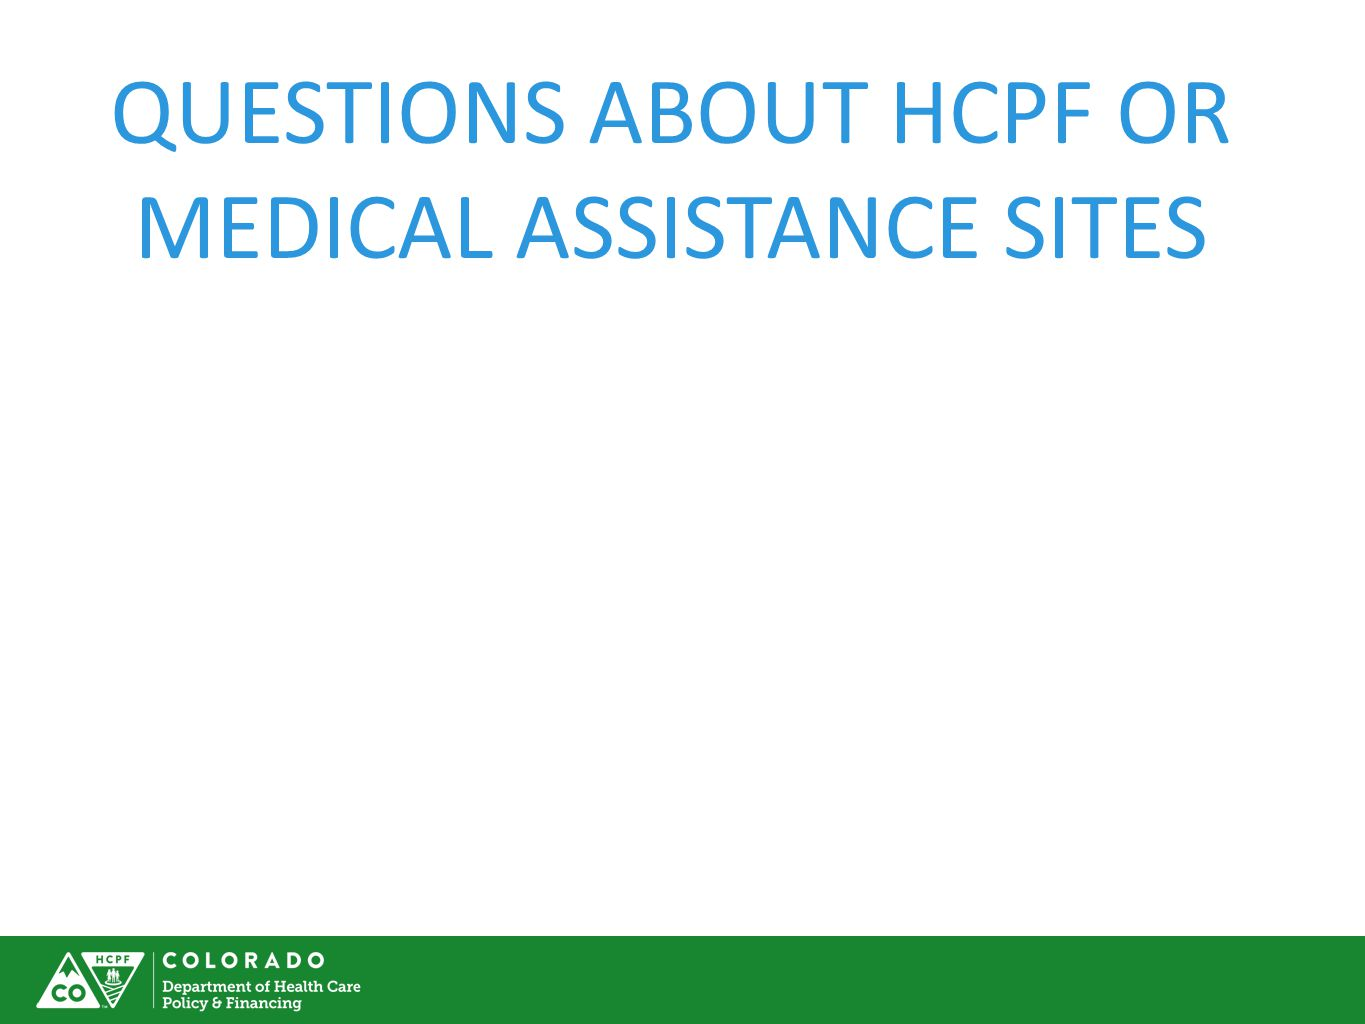 QUESTIONS ABOUT HCPF OR MEDICAL ASSISTANCE SITES